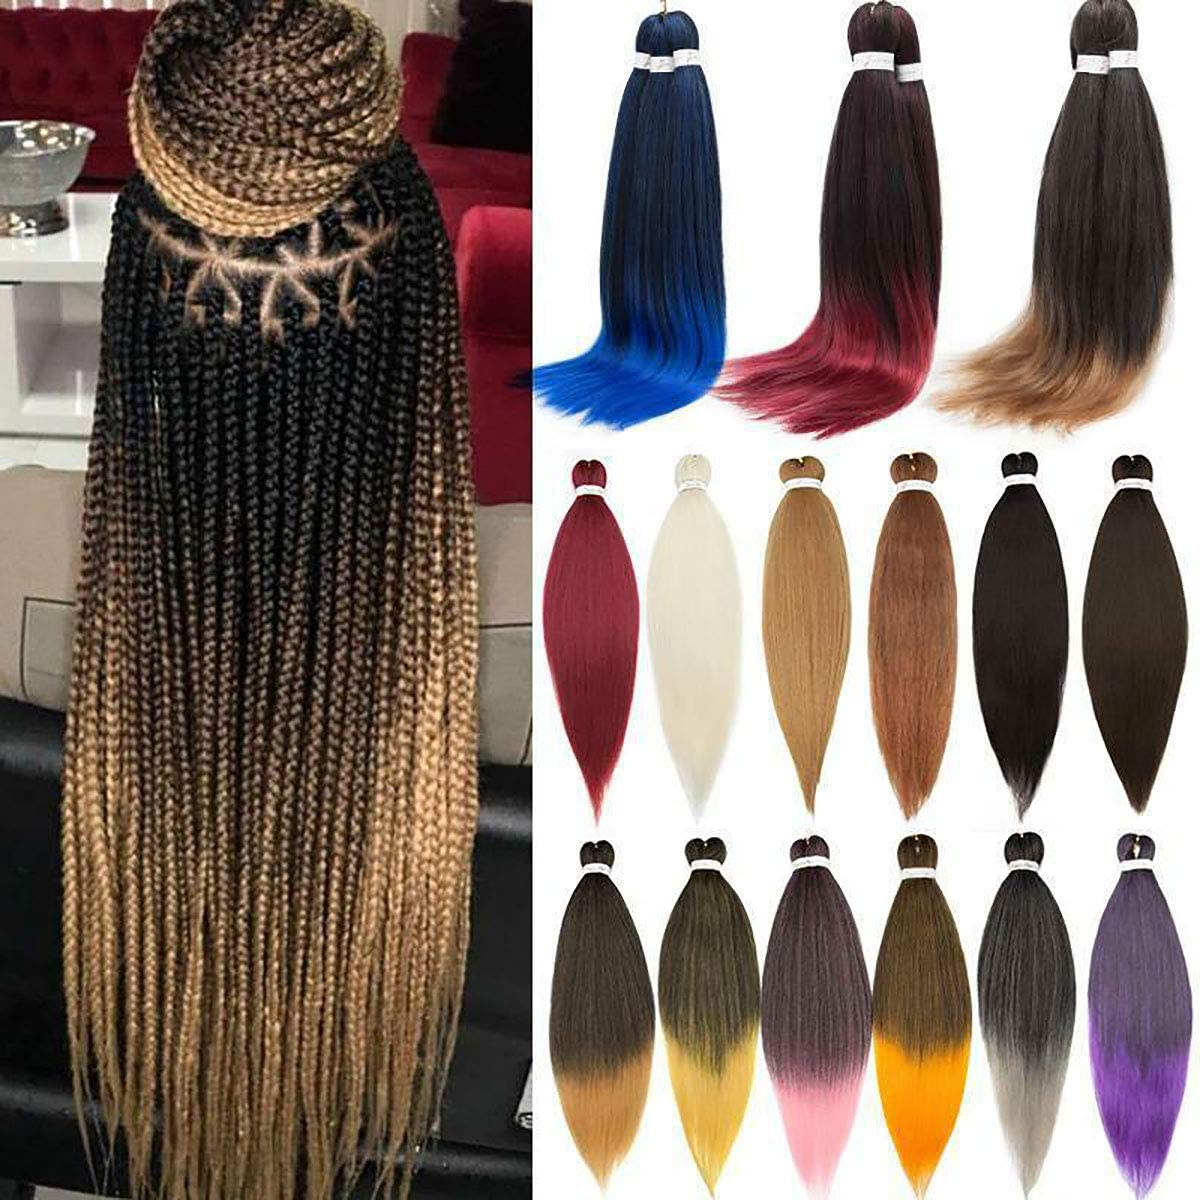 Pre-stretched Braiding Hair Extensions Professional Itch Free Synthetic Fiber Corchet Braids Yaki Hair Extensions 5 packs Braid Hair 26 Inch Black to Dark Blue